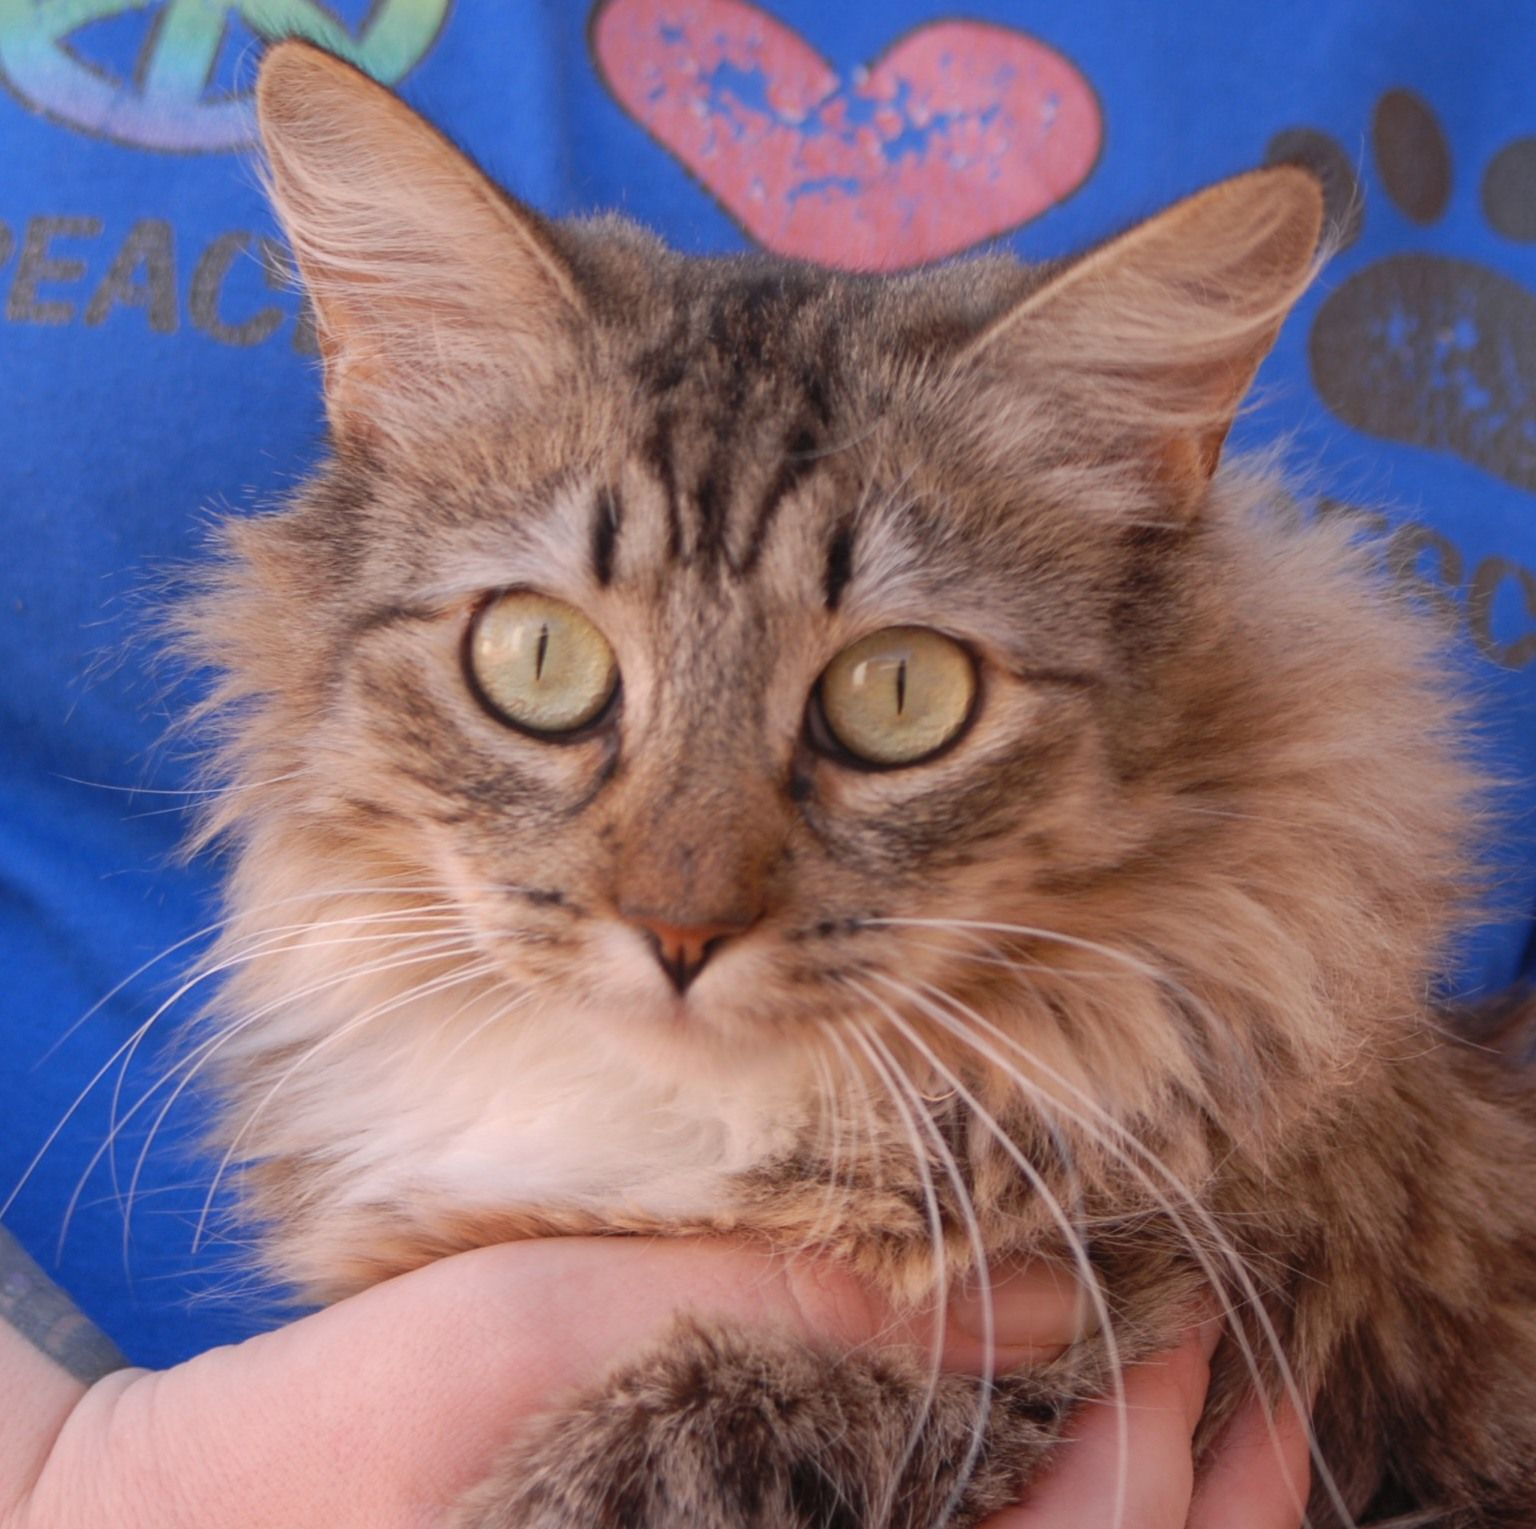 Dandelion, a young Maine Coon mix with a beautiful spirit